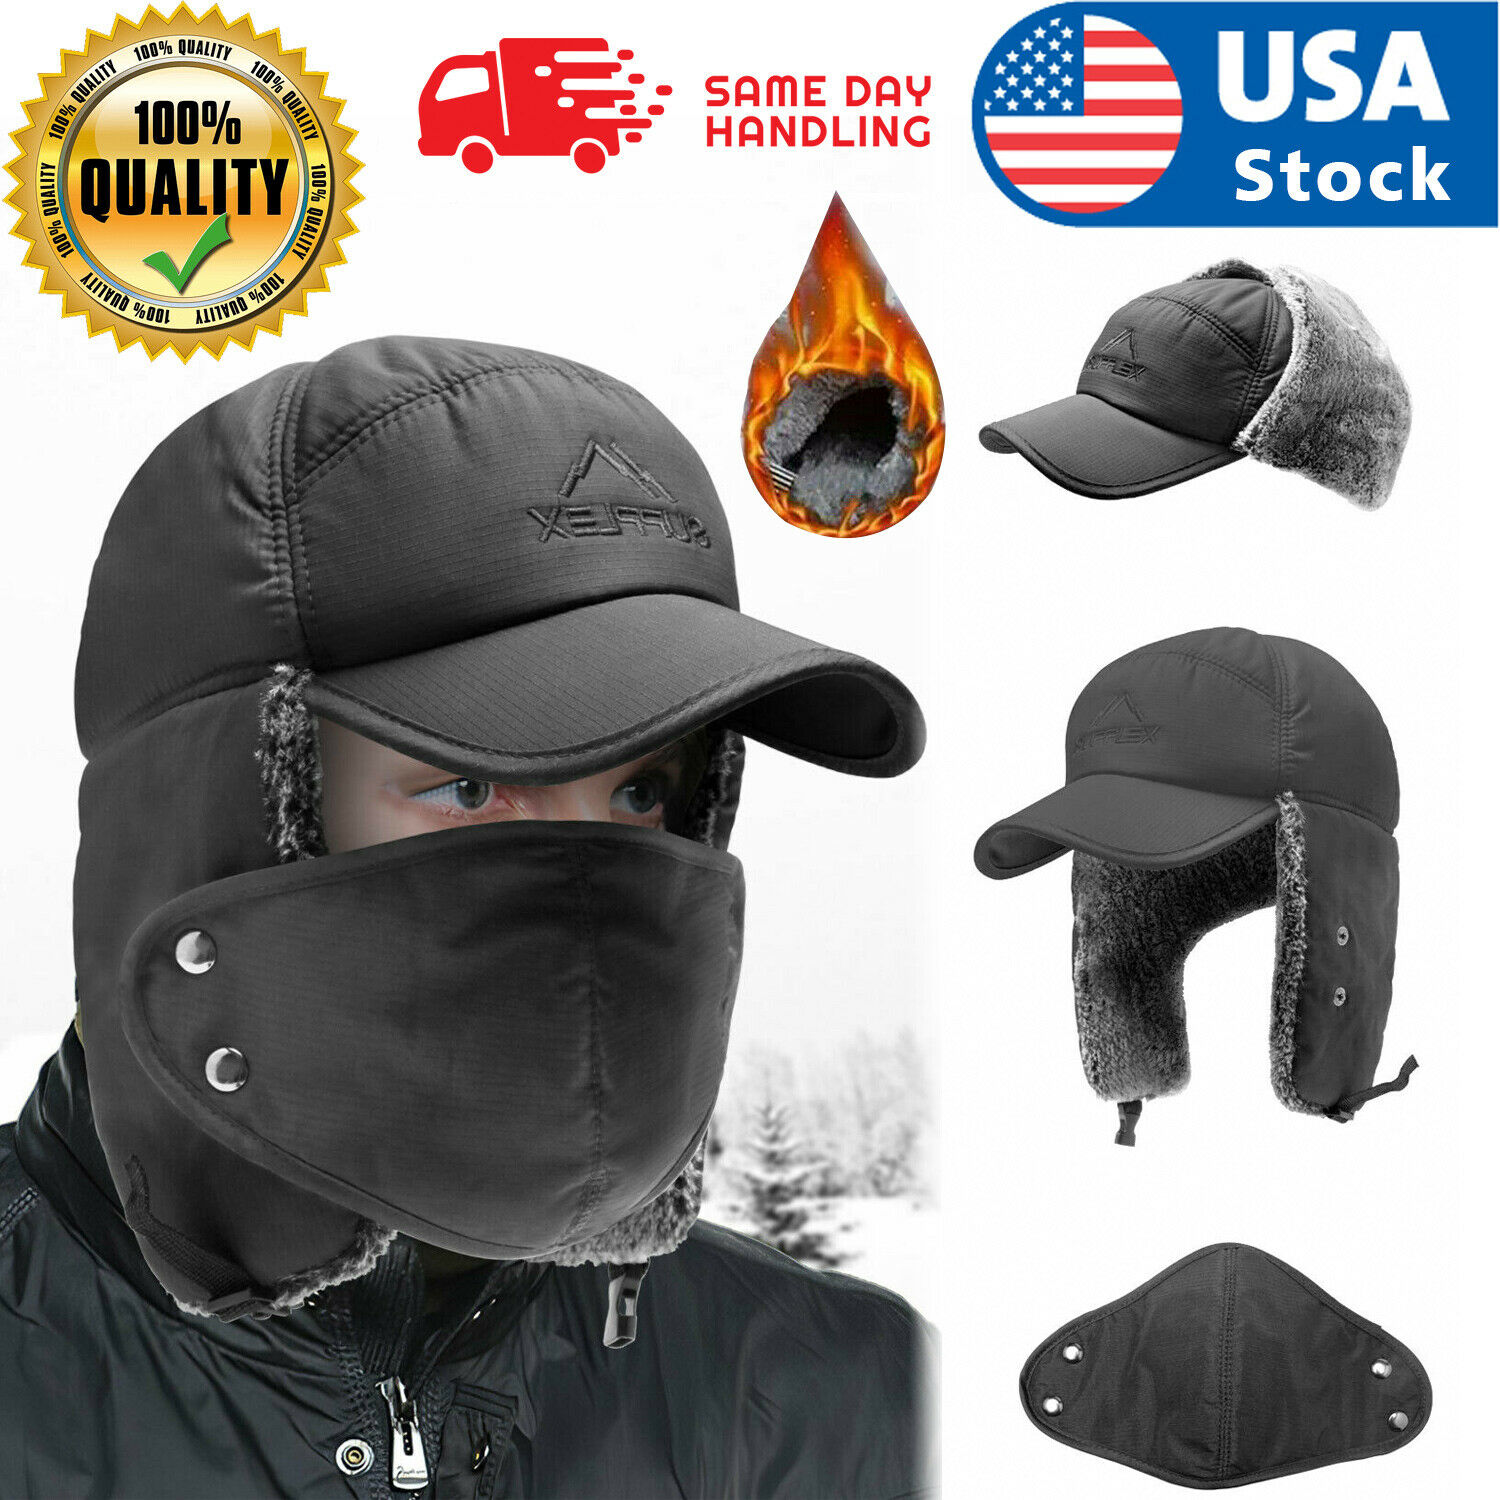 US Winter Face Mask Aviator Hat Cover Trooper Bomber Ear Flap Ski Windproof Cap Clothing, Shoes & Accessories